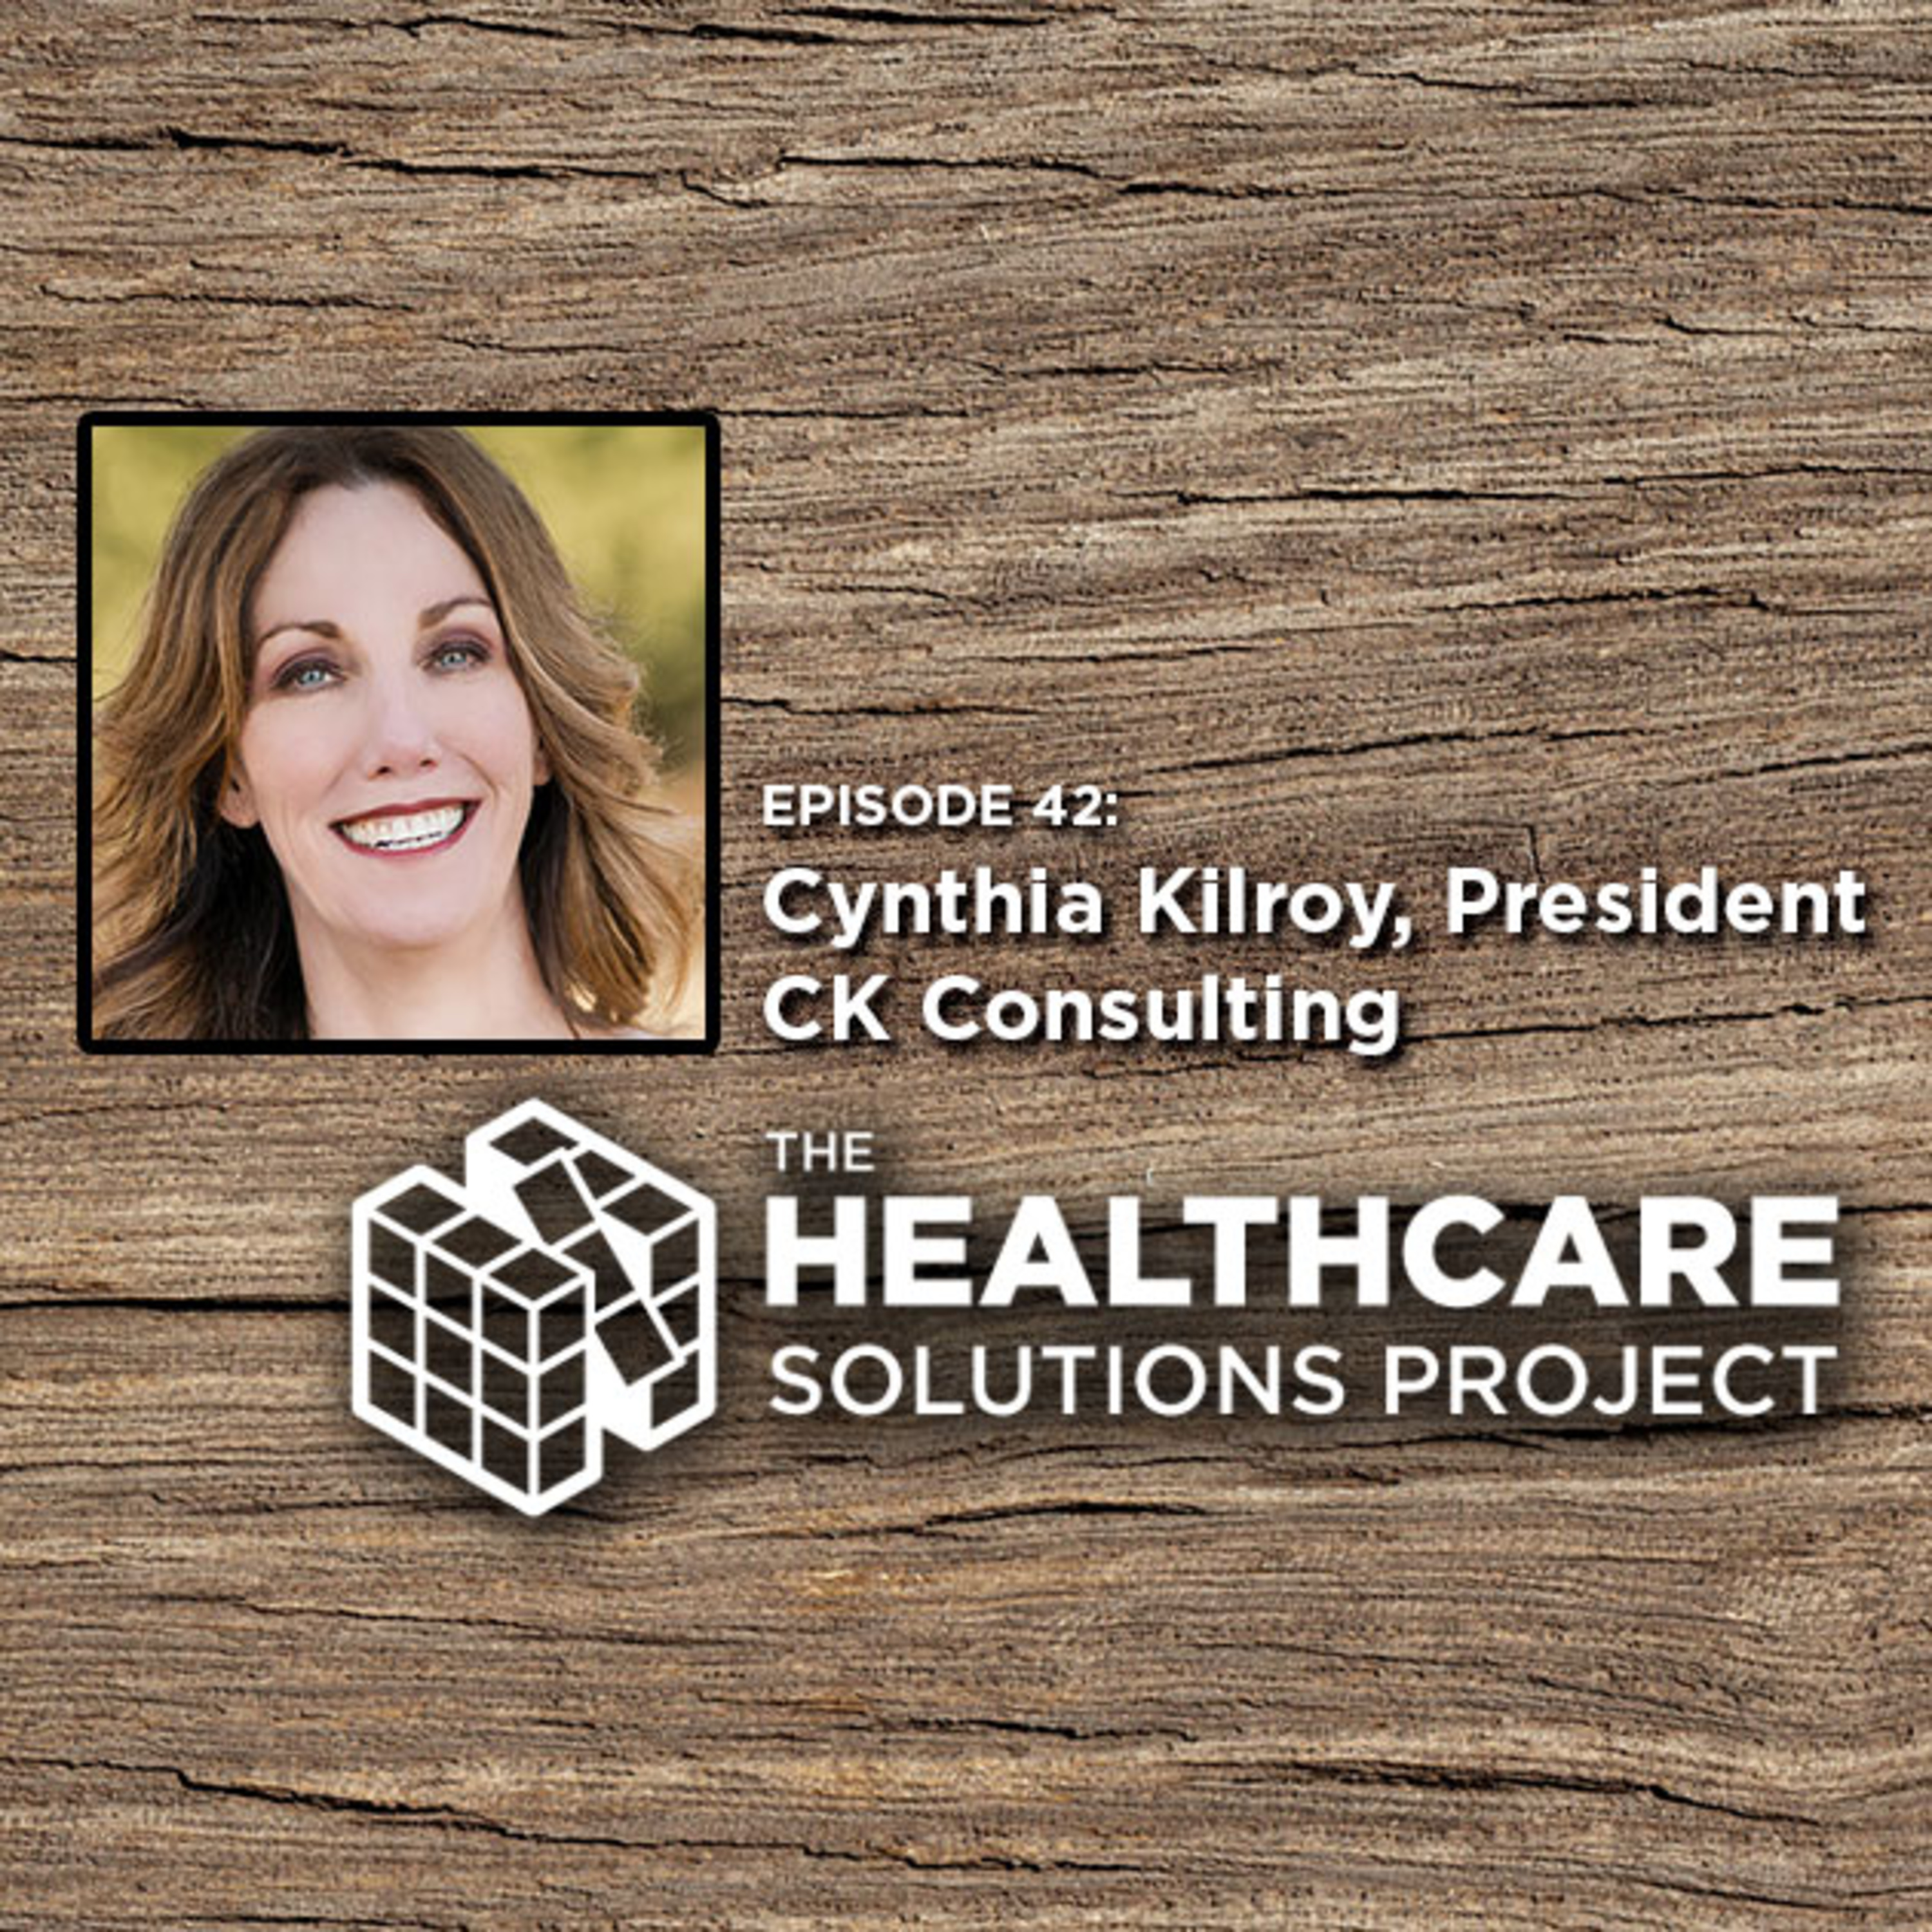 Moving from a closed system to a healthcare ecosystem – Cynthia Kilroy, president of CK Consulting – Episode 42